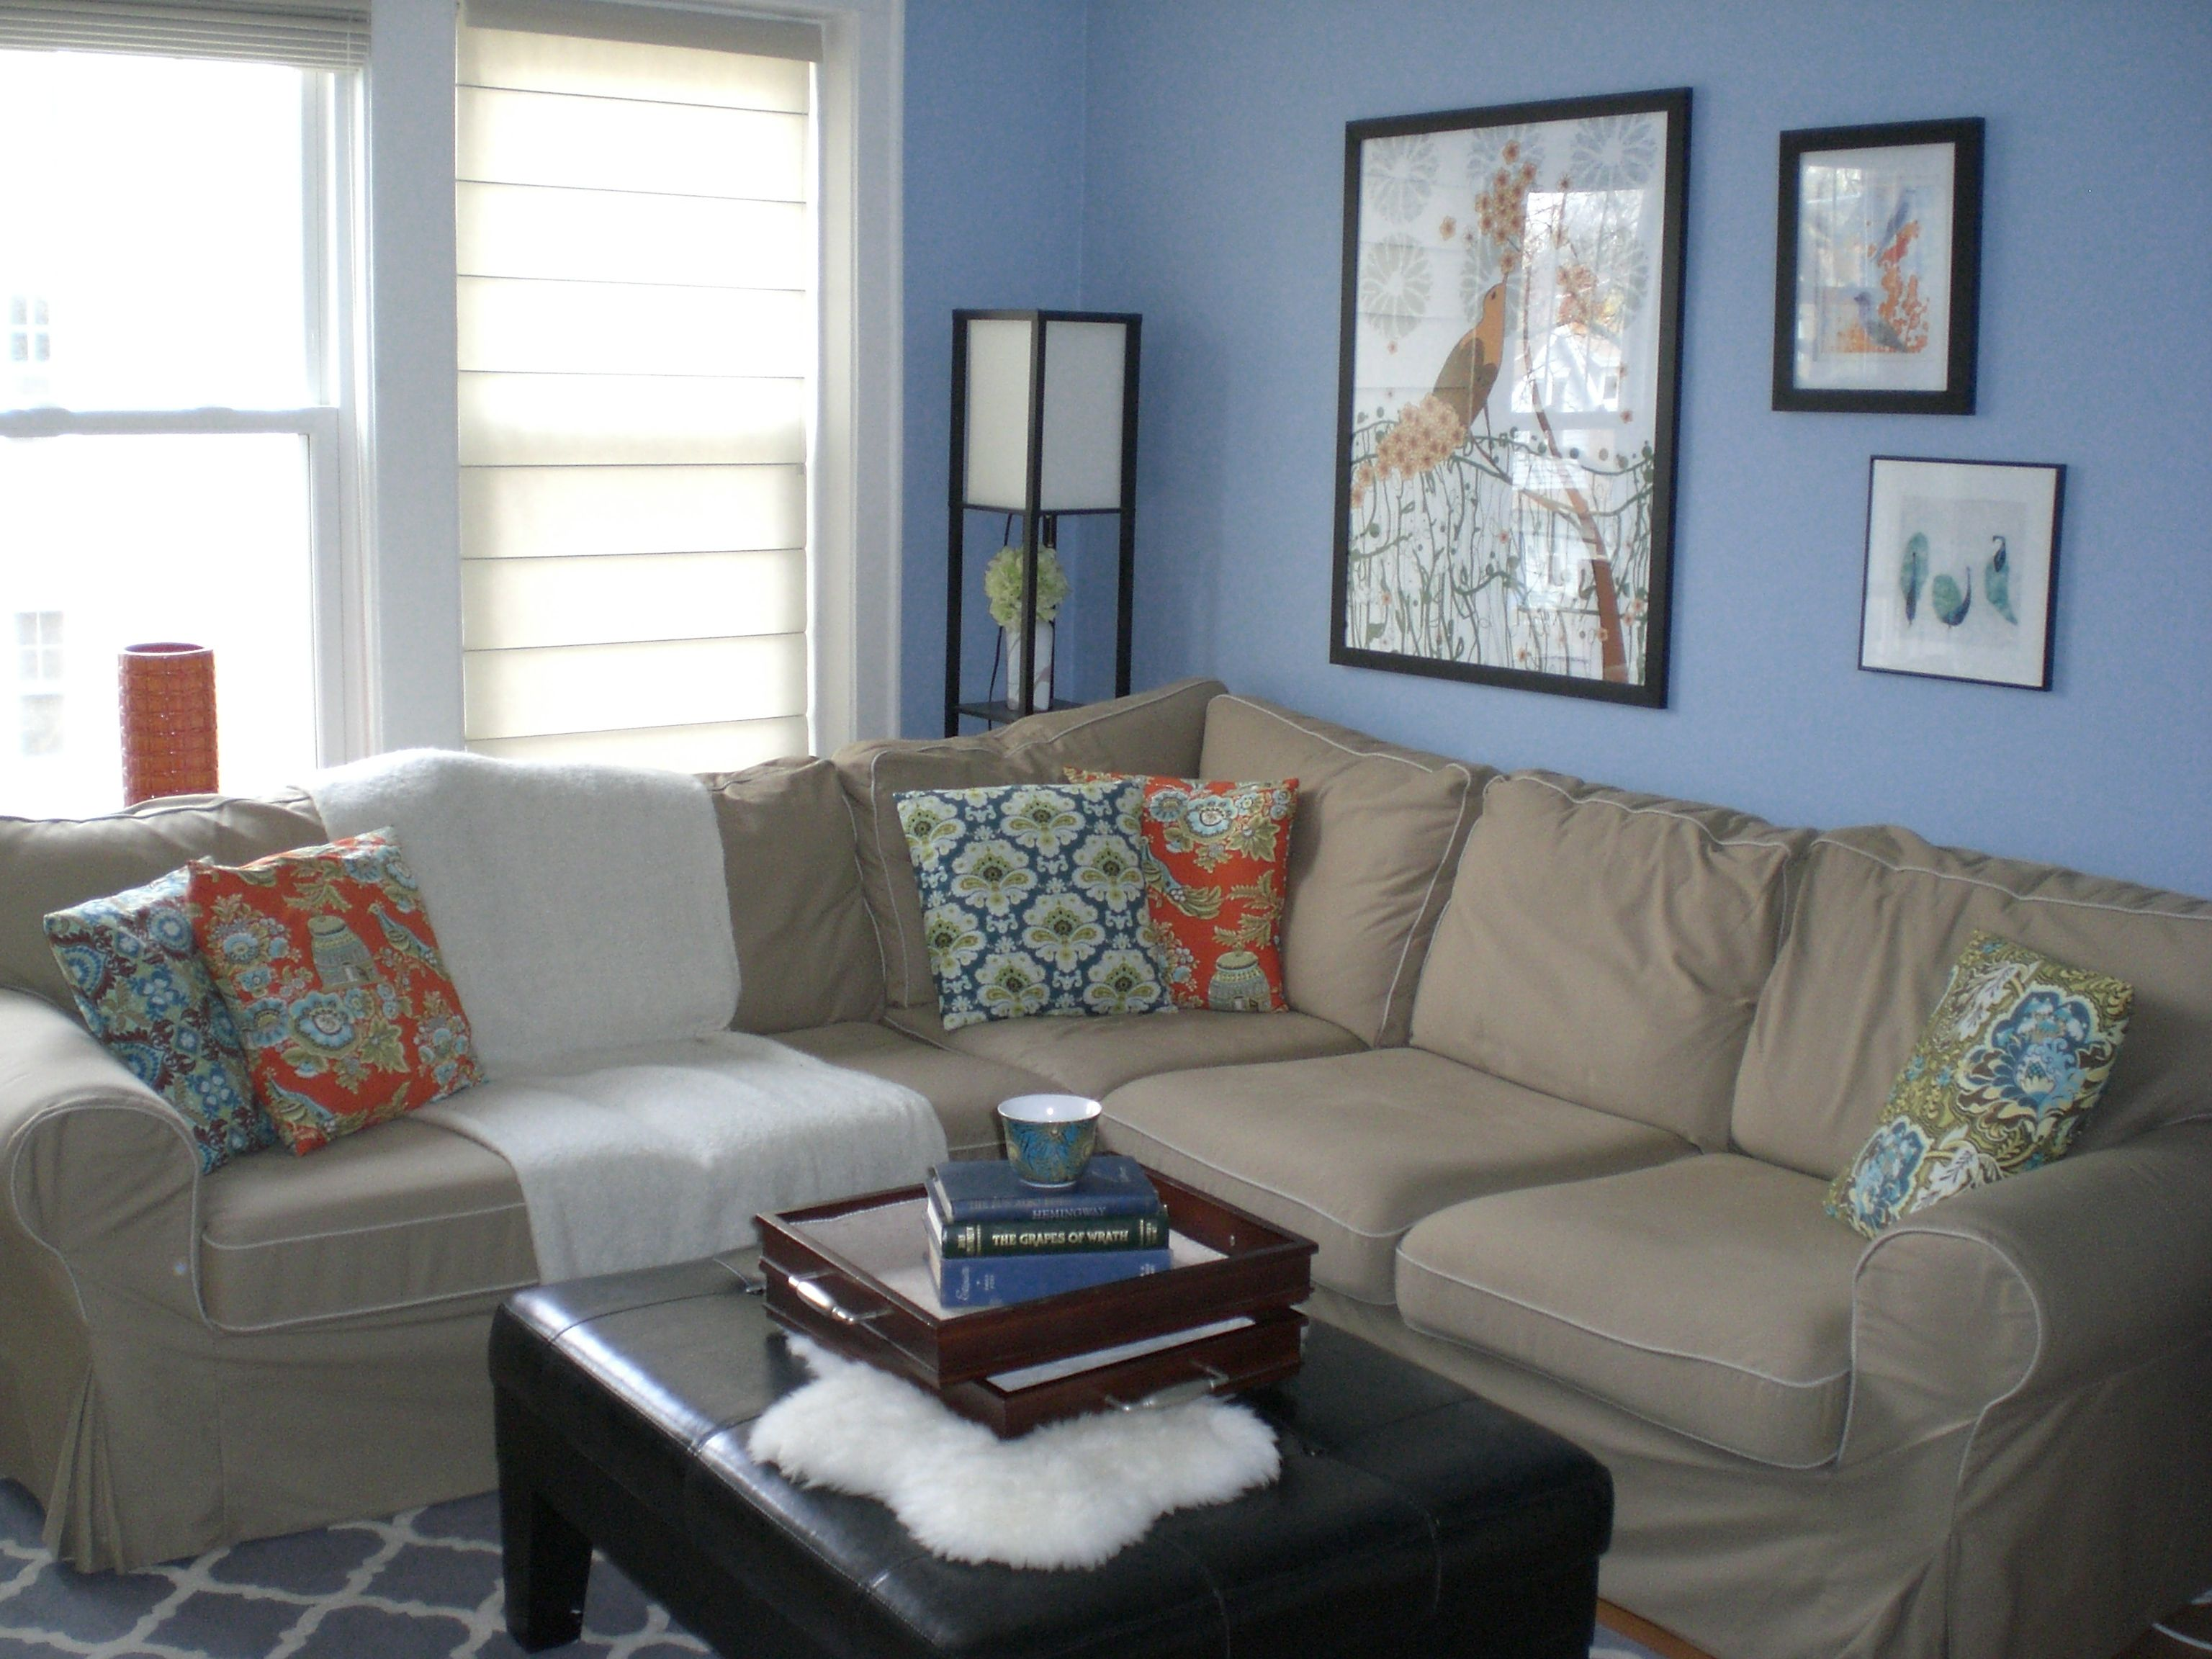 Light blue paint colors for living room xrkotdh living for Living room color paint ideas